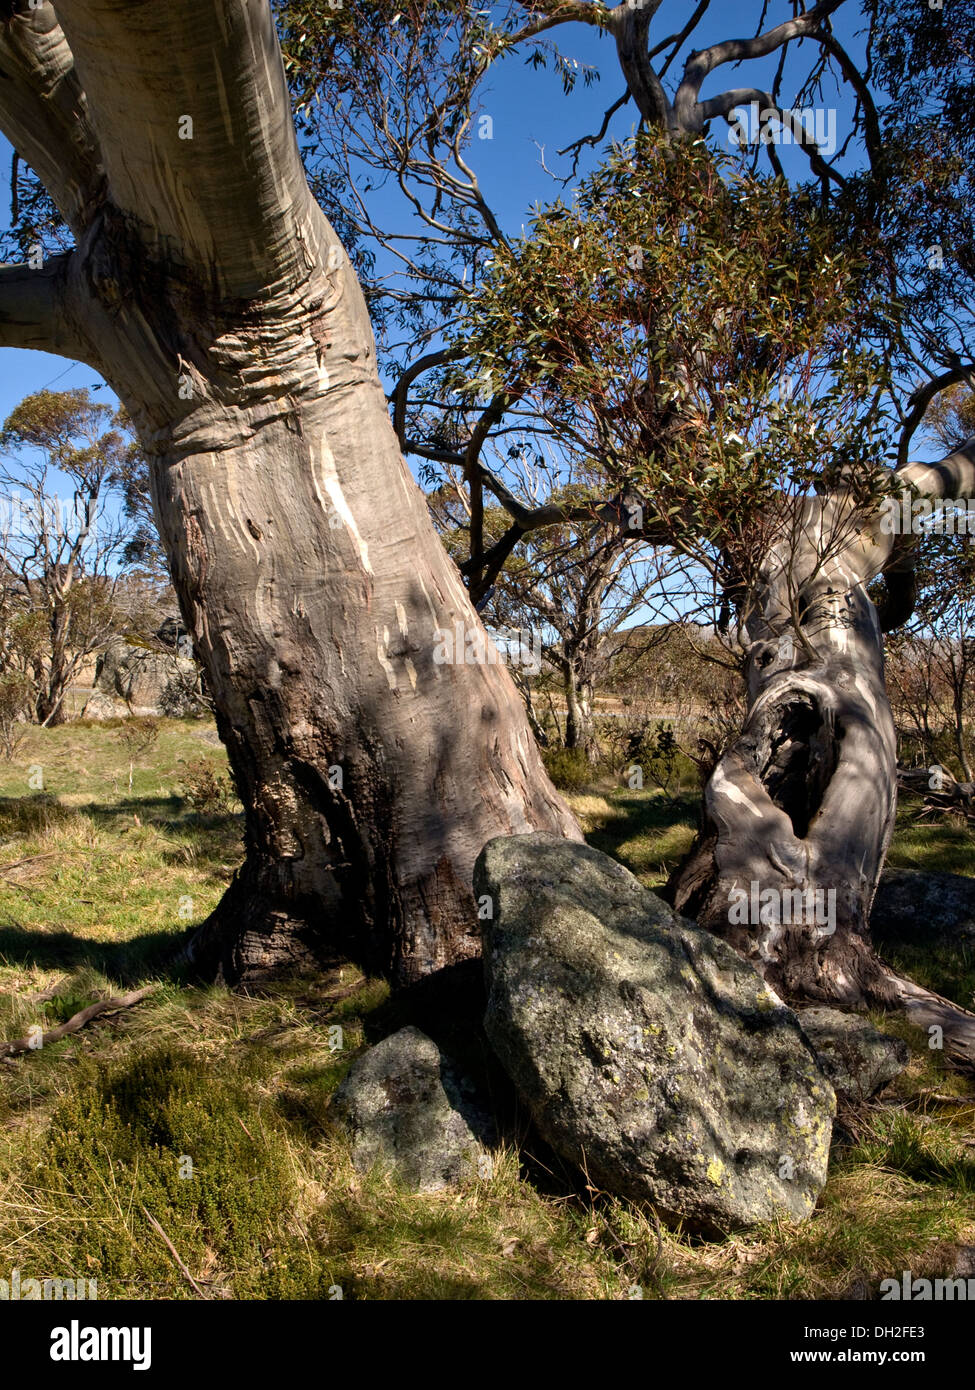 Snow gum (Eucalypt), Snowy Mountains, NSW, Australia - Stock Image